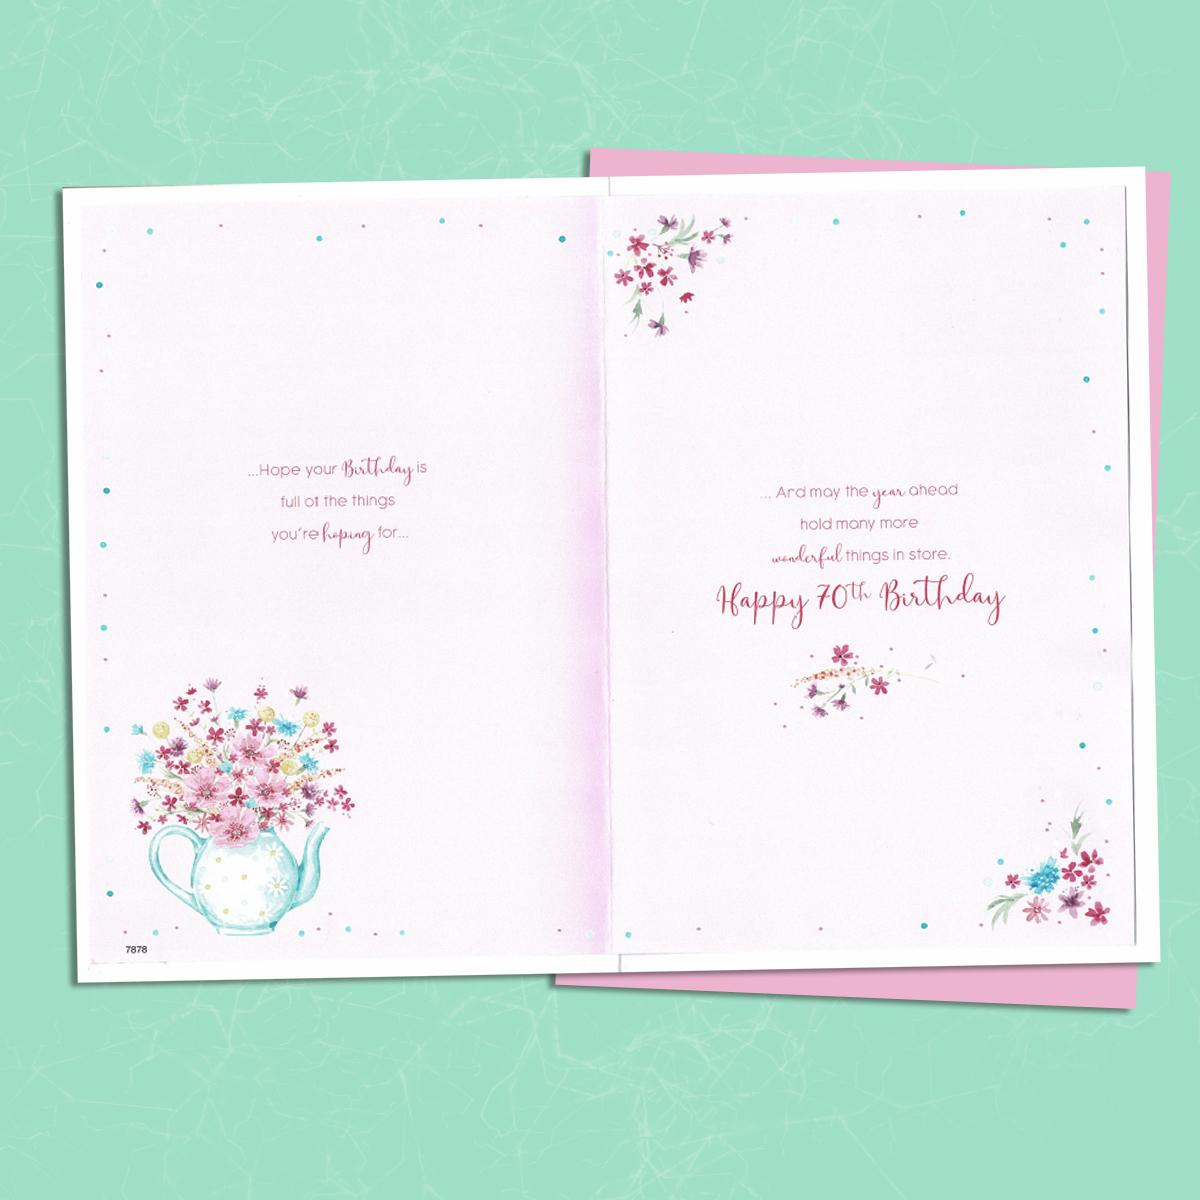 Inside Of Sister Age 70 Birthday Card Showing Layout And Printed Text